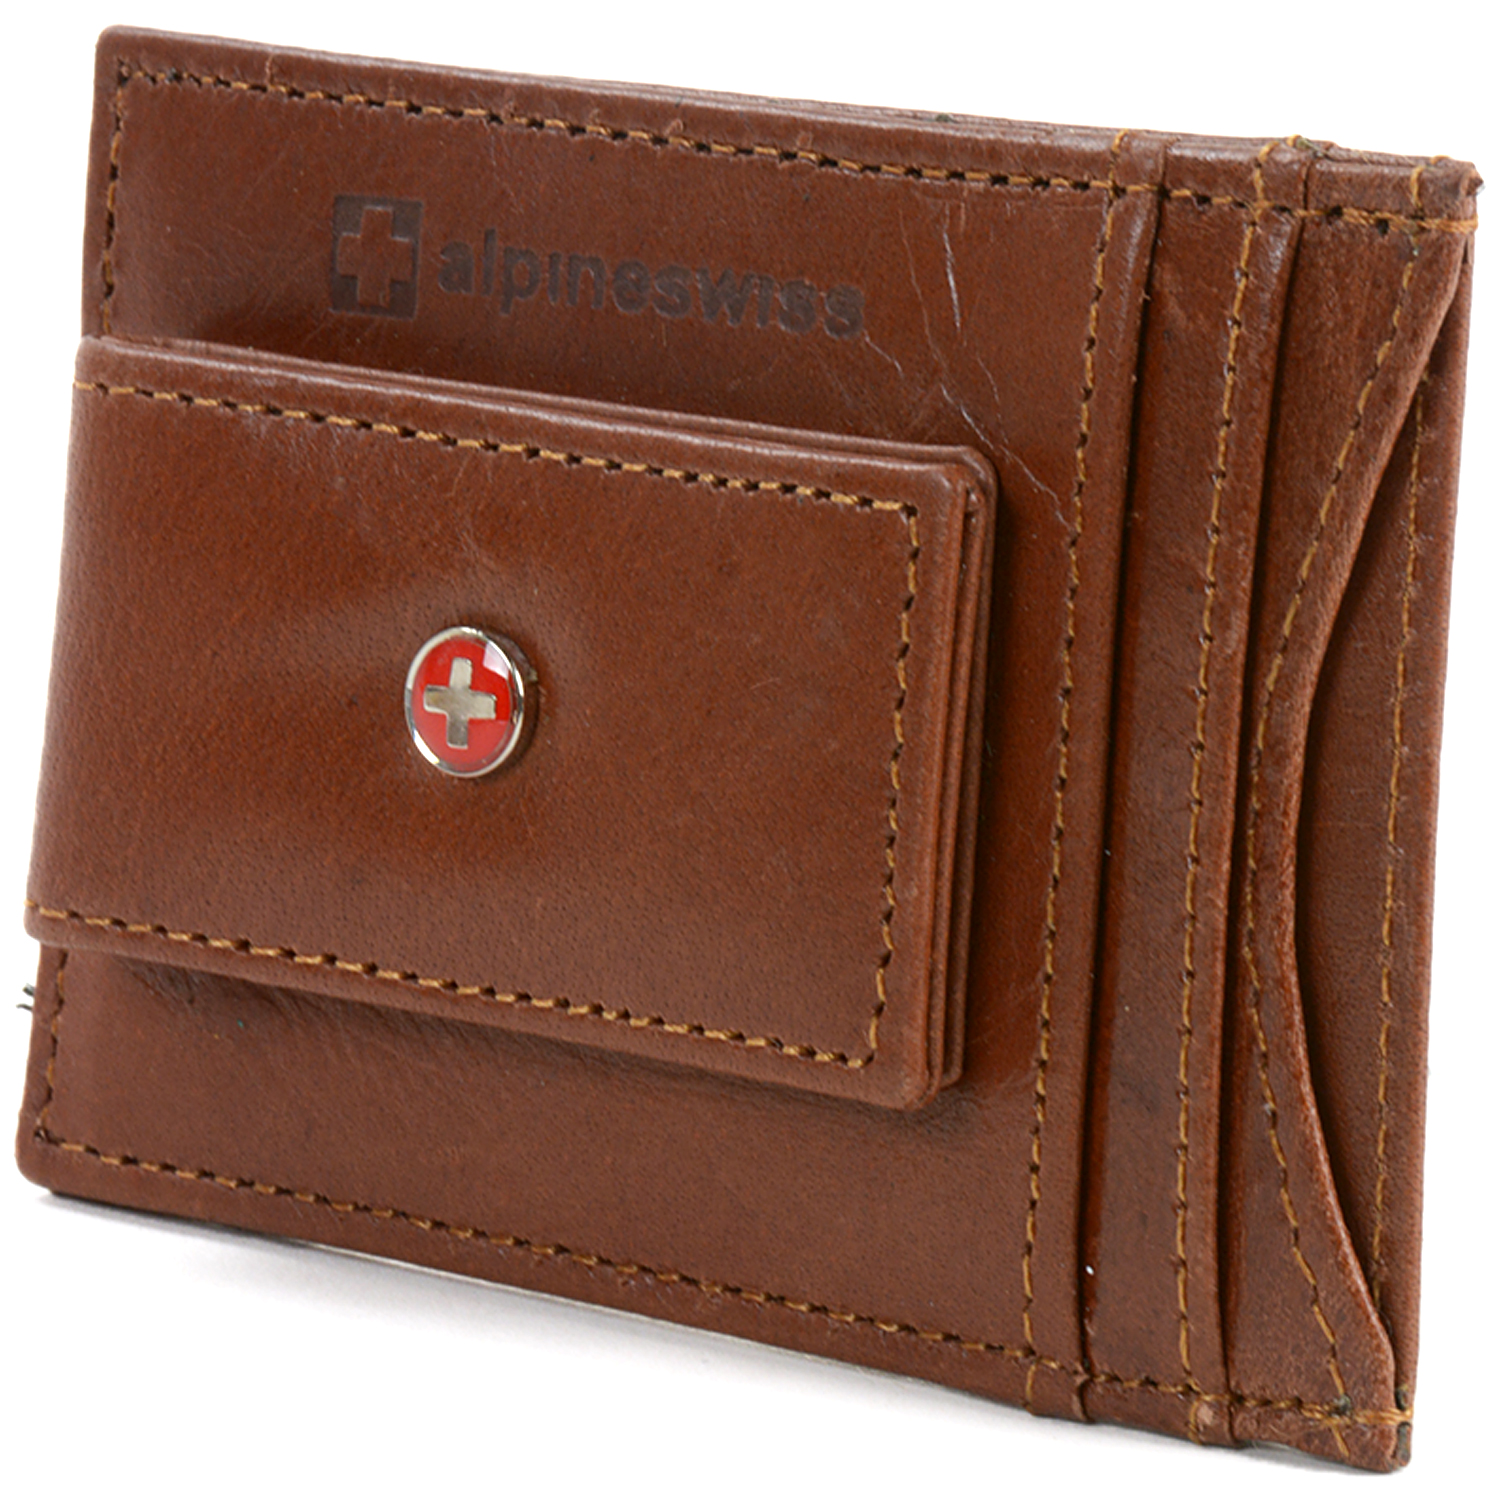 Alpine Swiss RFID Blocking Men's Magnetic Money Clip Leather Front Pocket Wallet